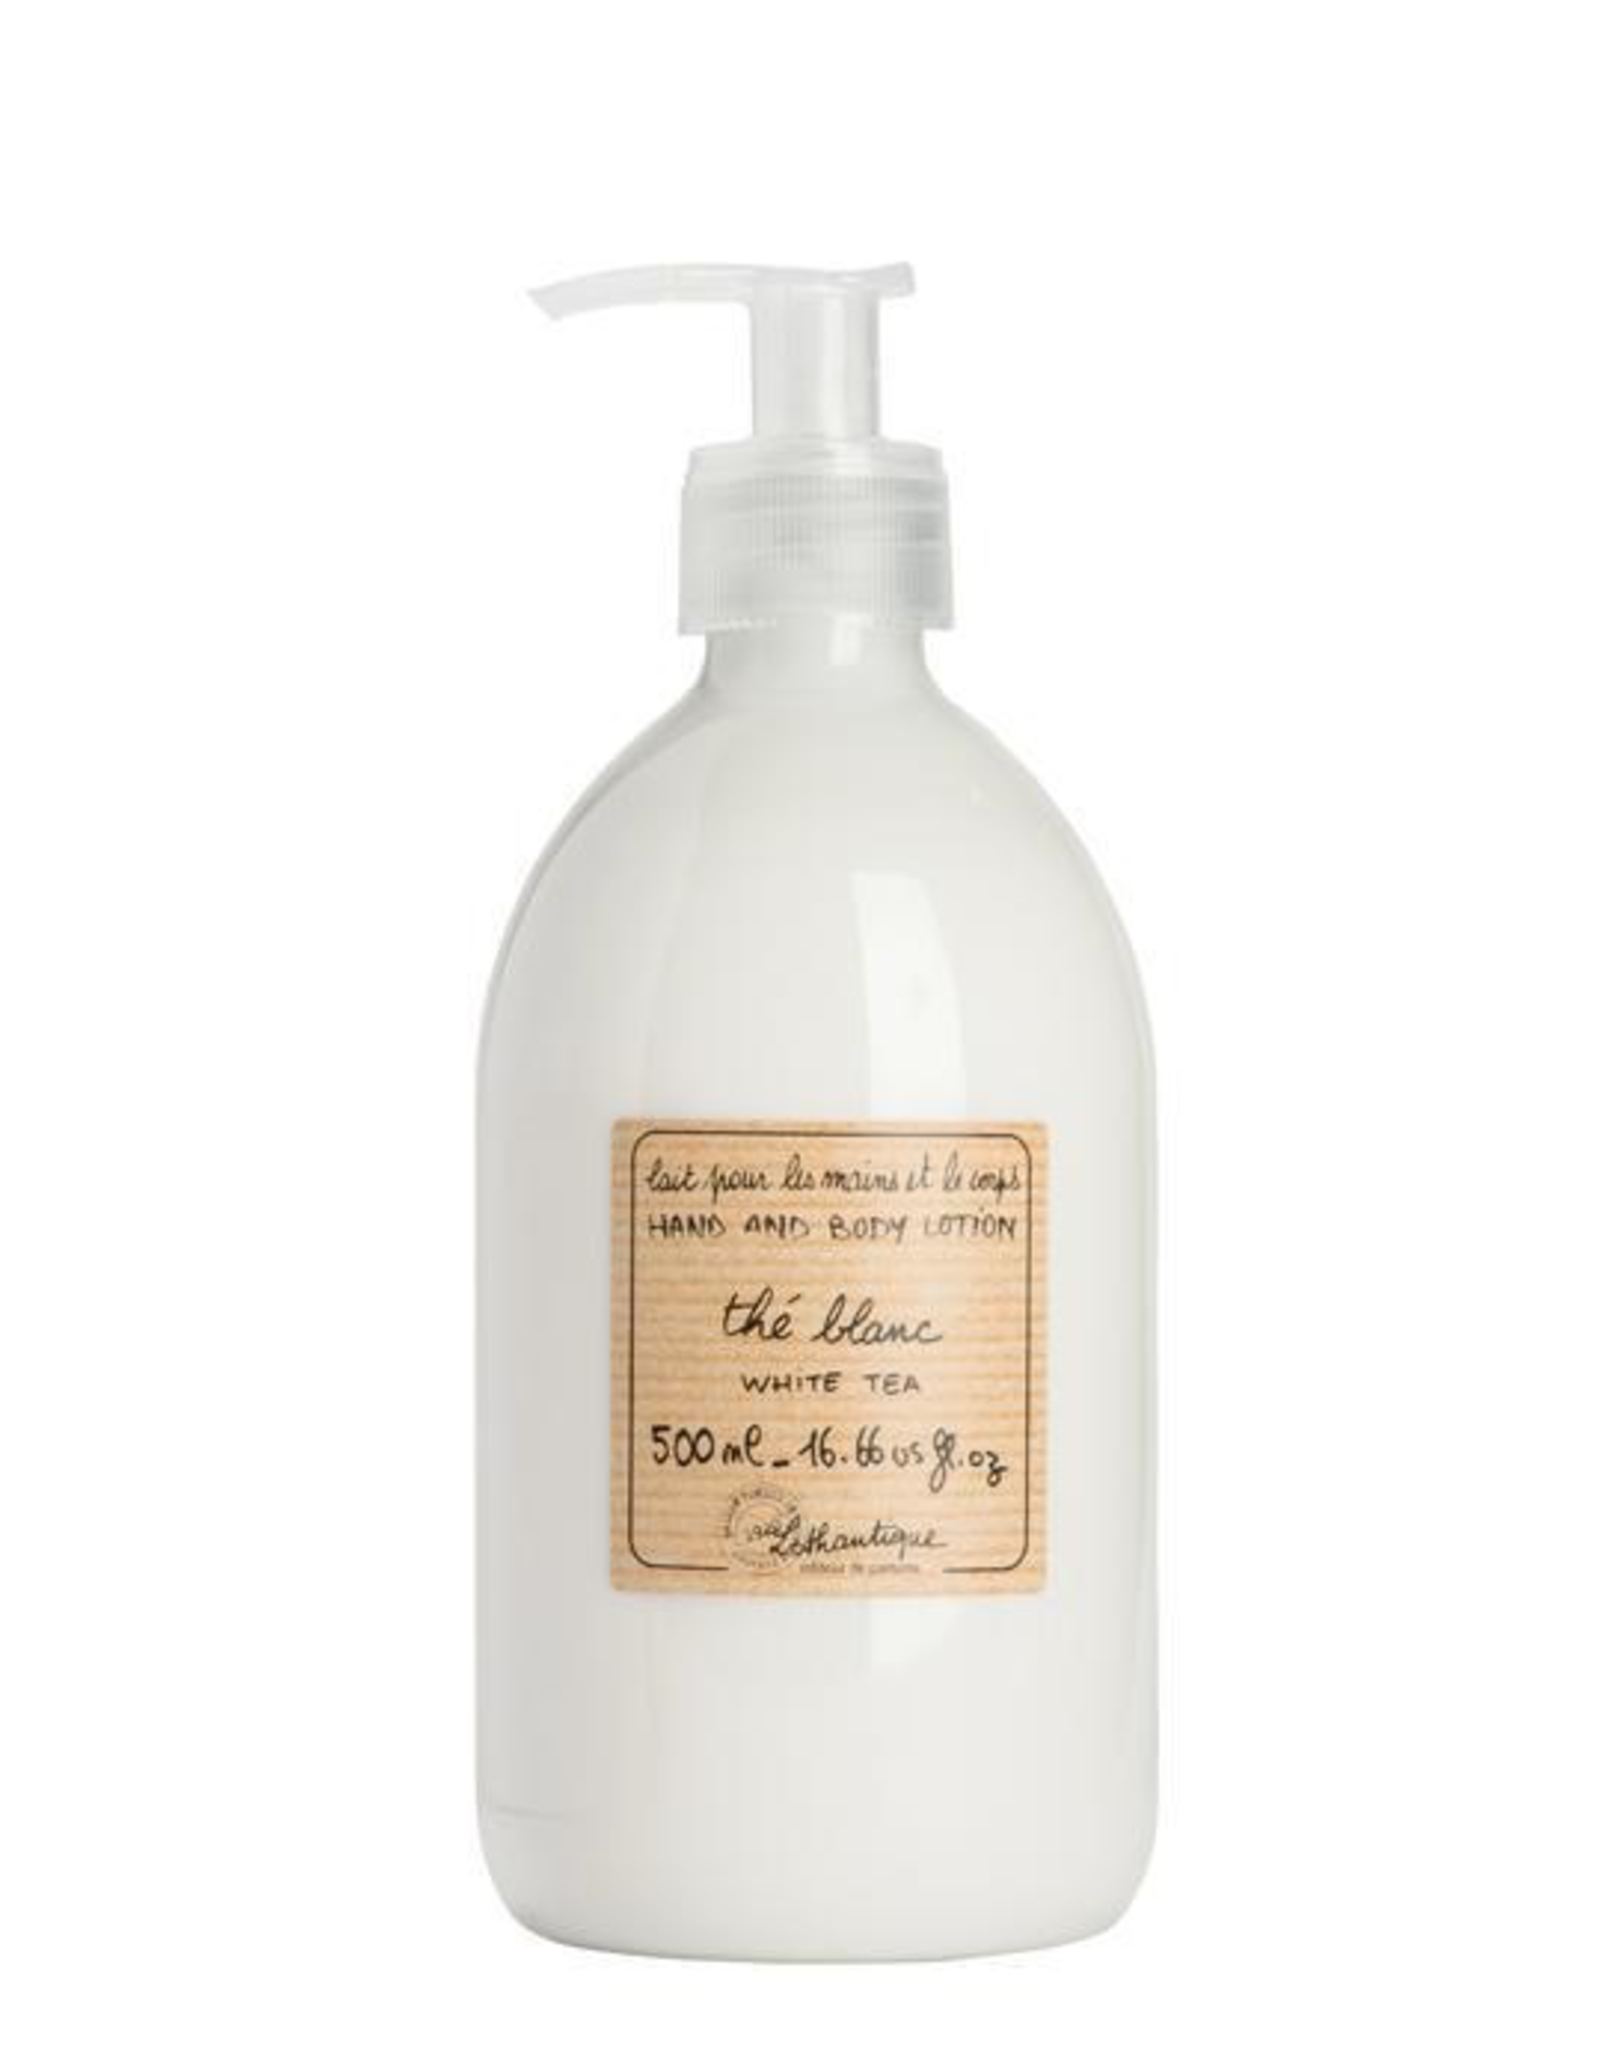 Hand And Body Lotion, White Tea